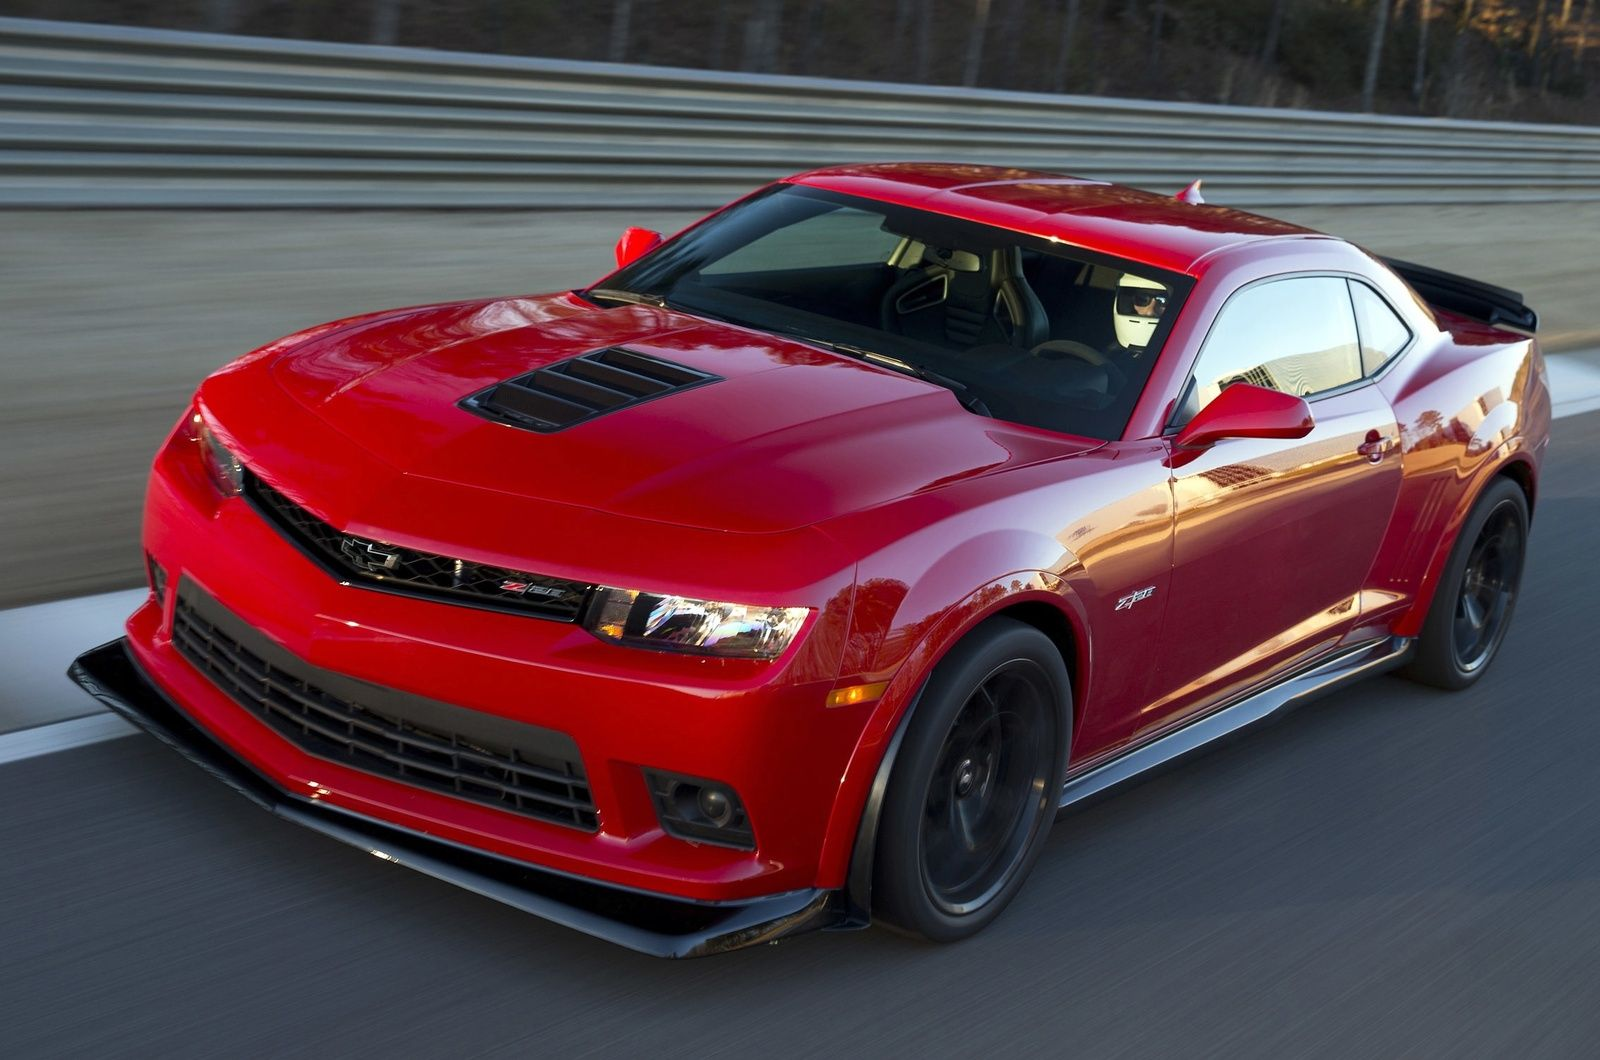 2015 chevrolet camaro zl1 coupe | front-quarter view. copyright